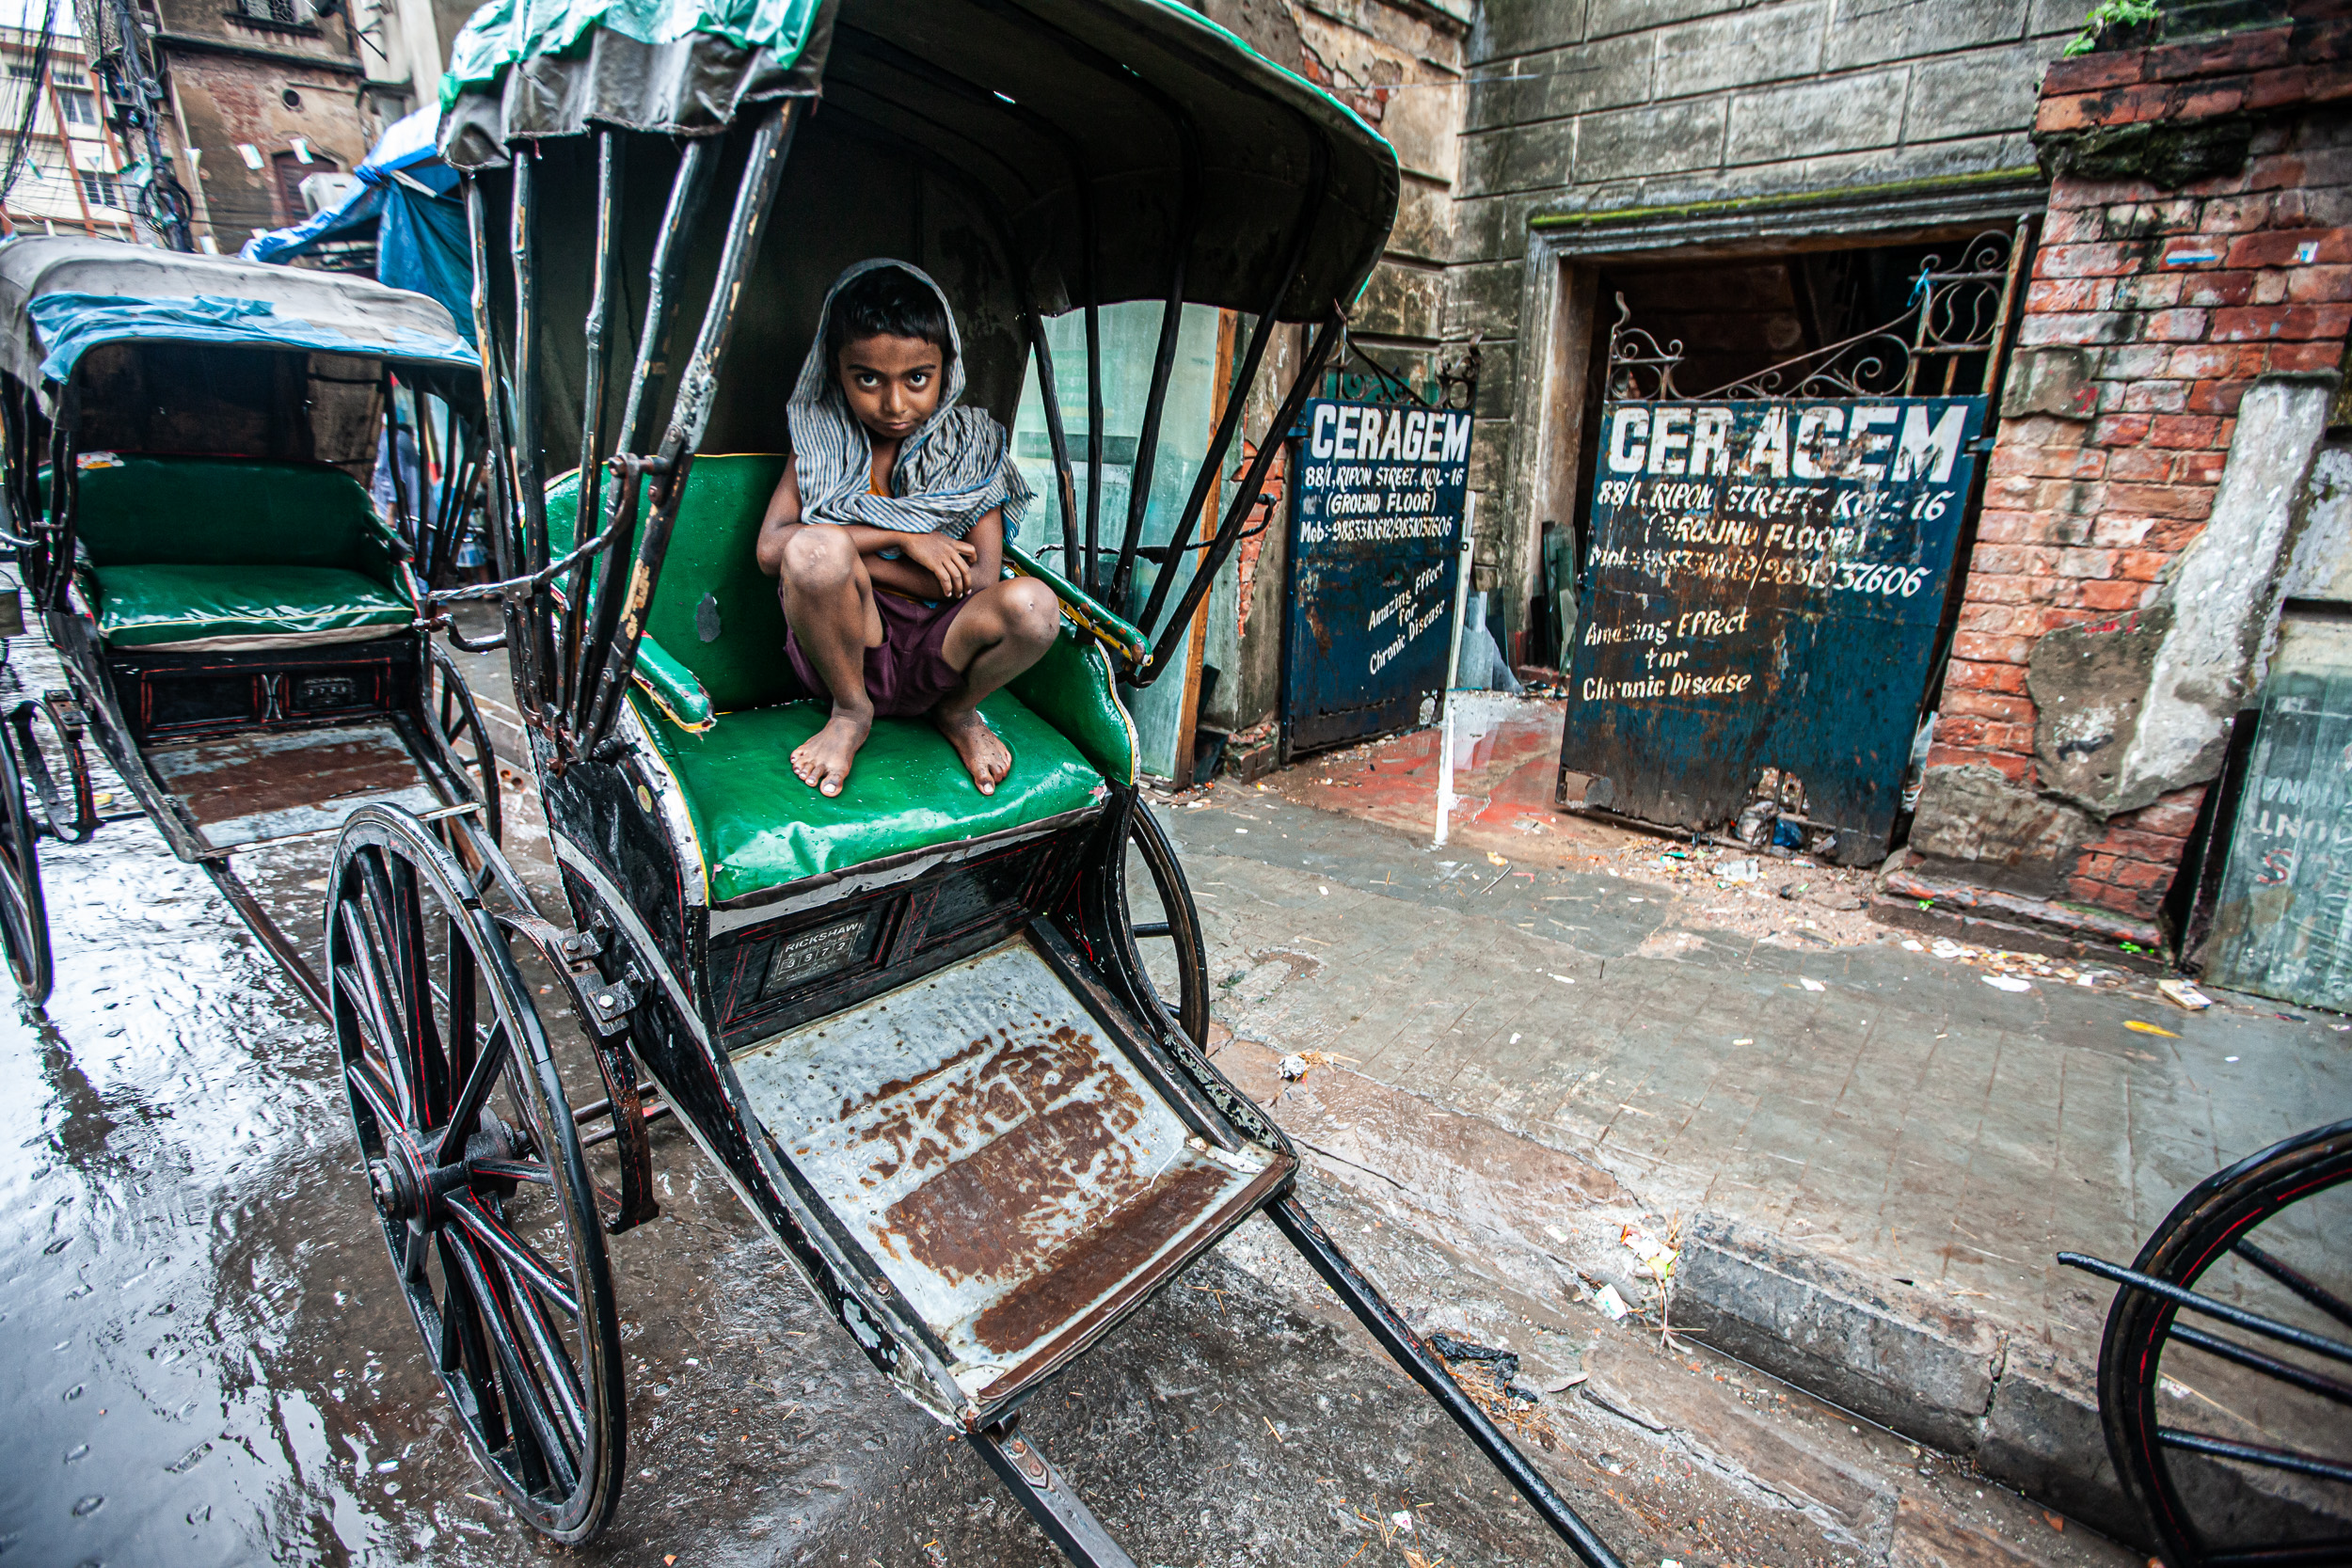 When not in use a rickshaw makes a handy restingplace.